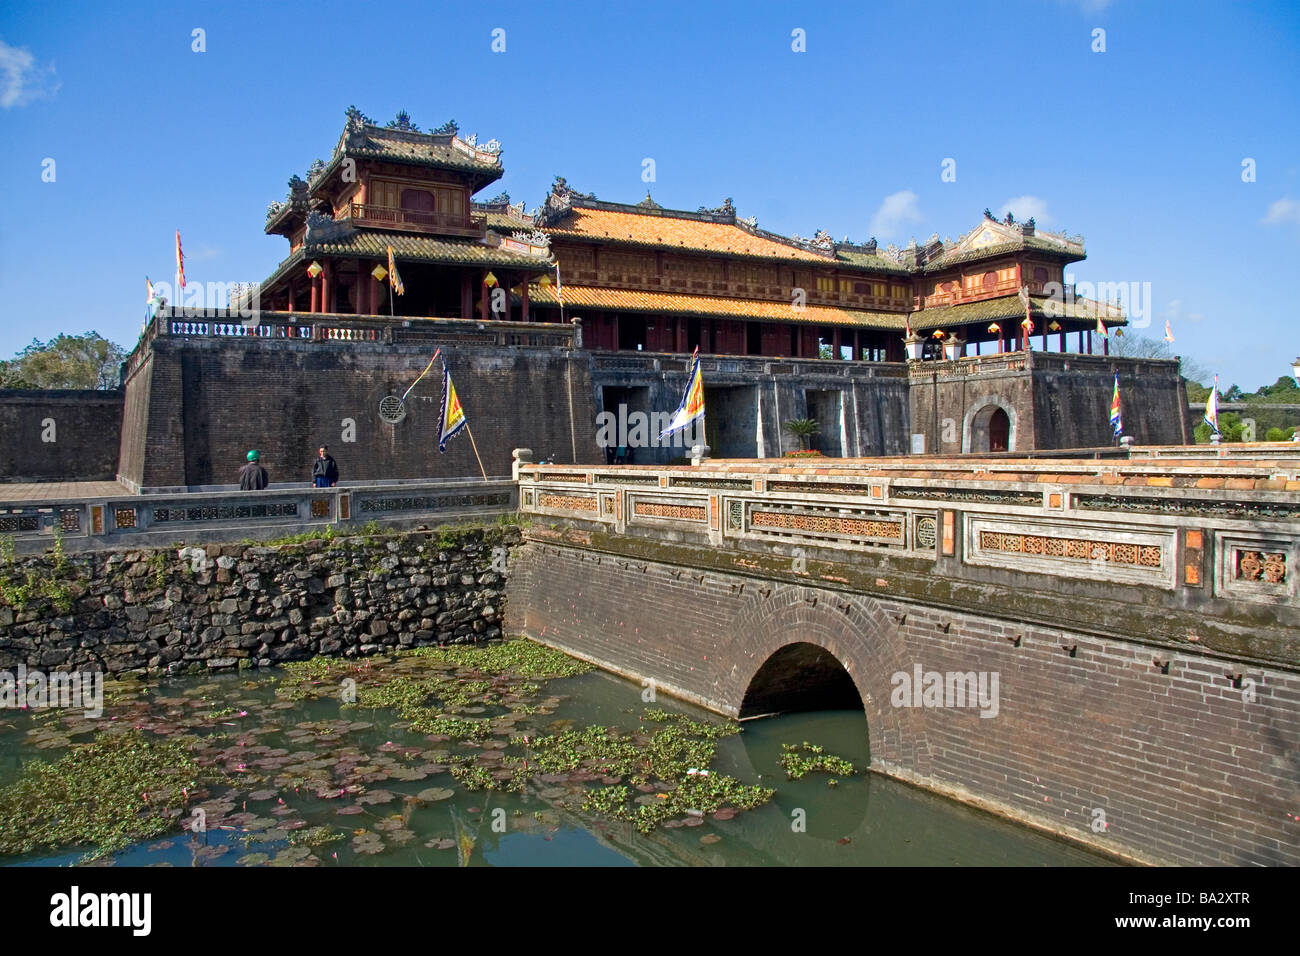 The Ngo Mon Gate at the entrance to the Imperial Citadel of Hue Vietnam - Stock Image